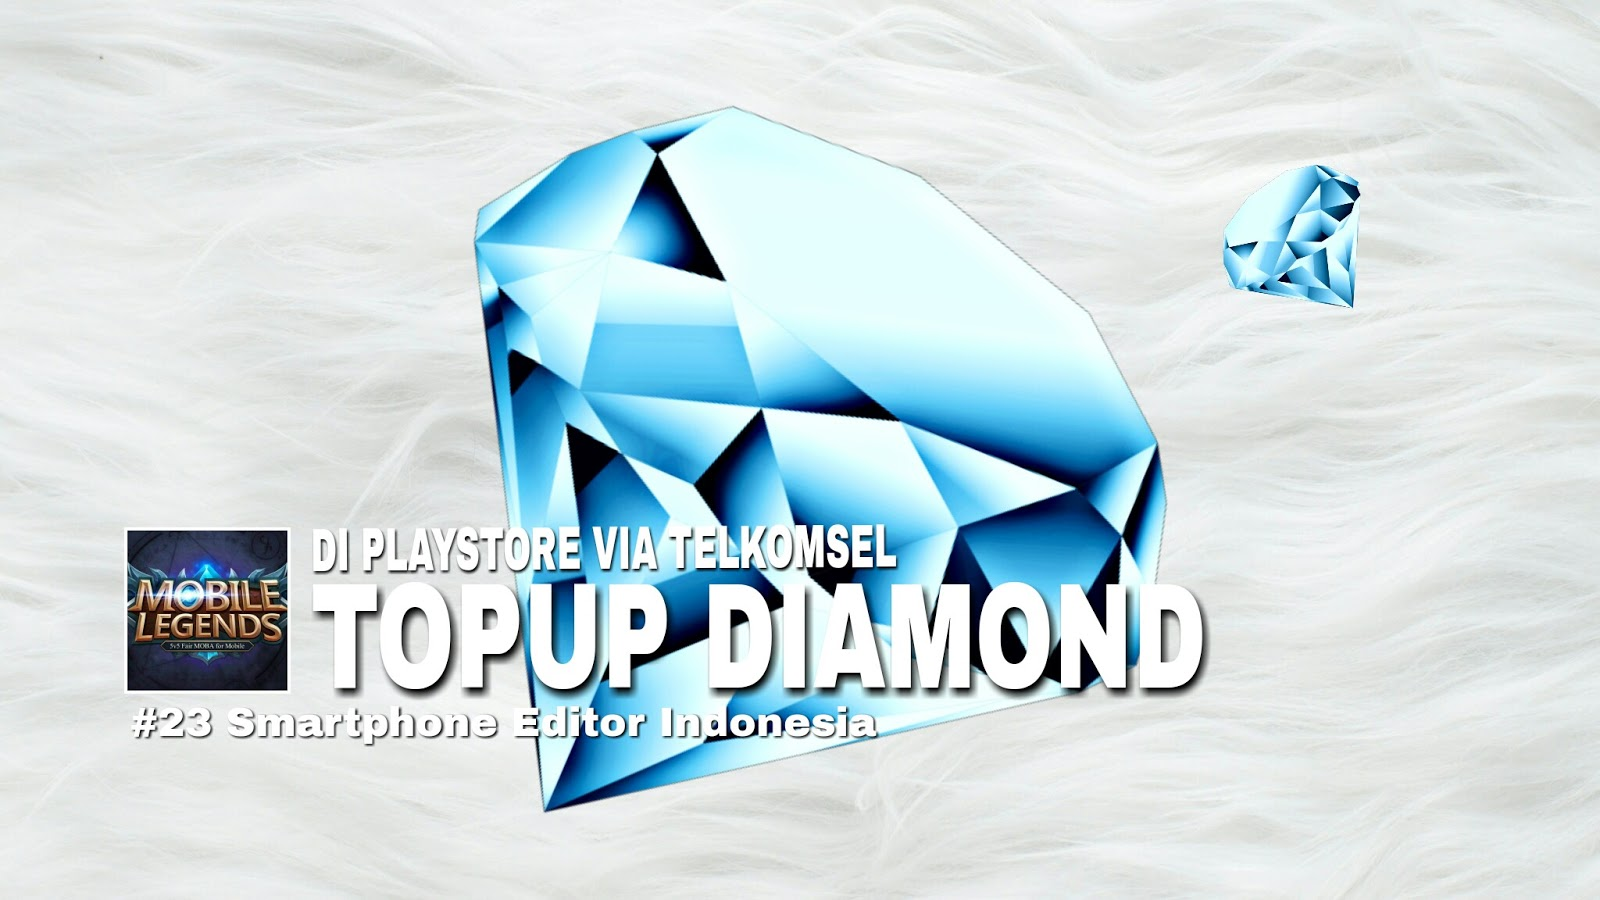 Cara Topup Diamond Mobile Legends Via Telkomsel Di Play Store